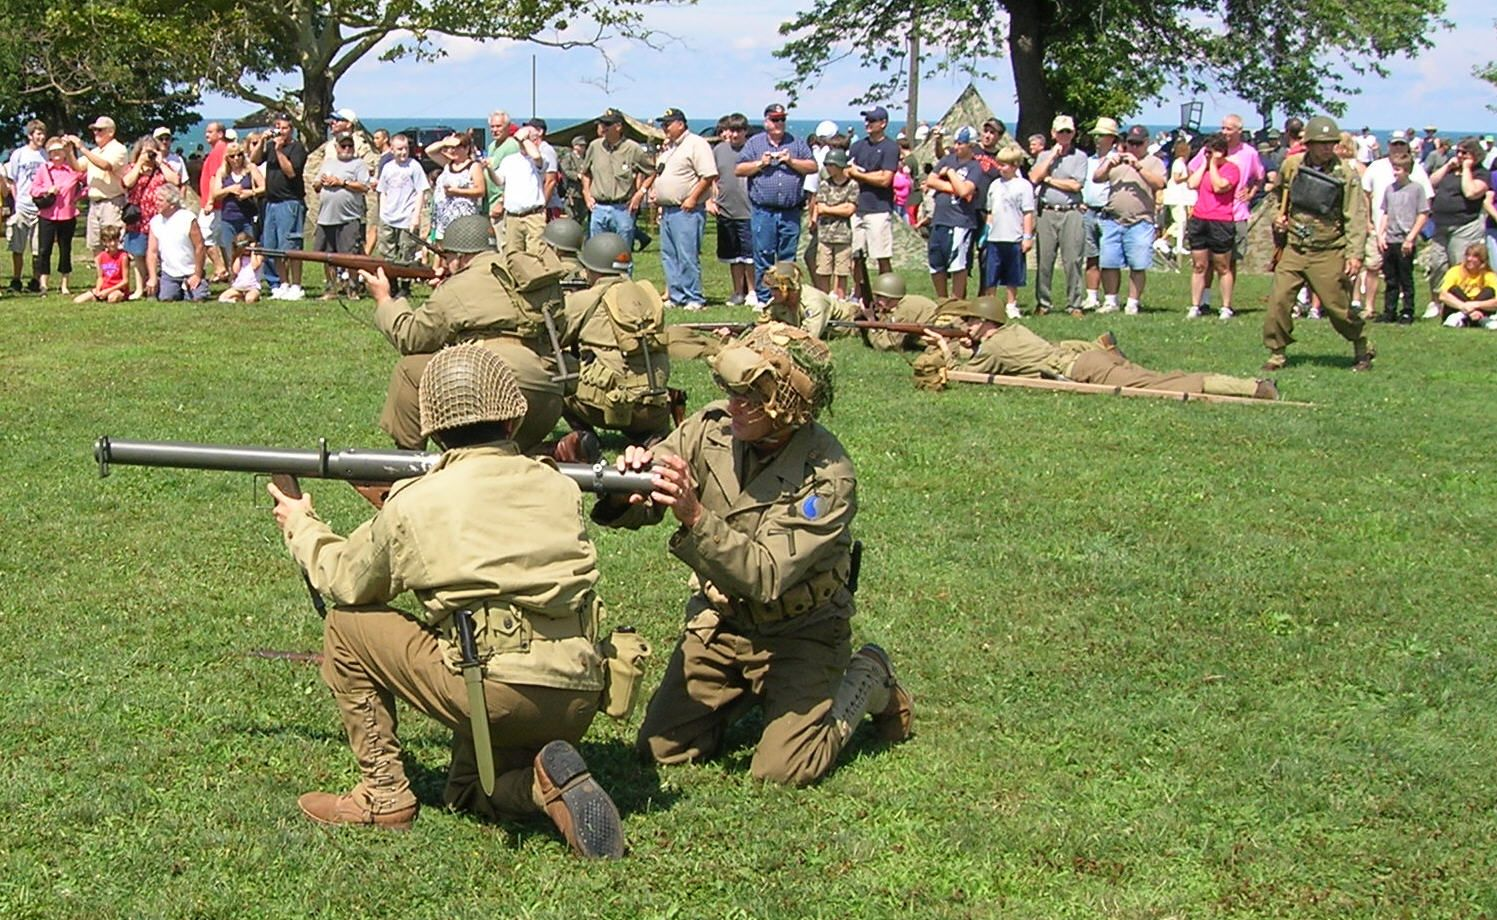 Day reenactment ww ii pictures pinterest - Us Bazooka Team Click On Image To Enlarge